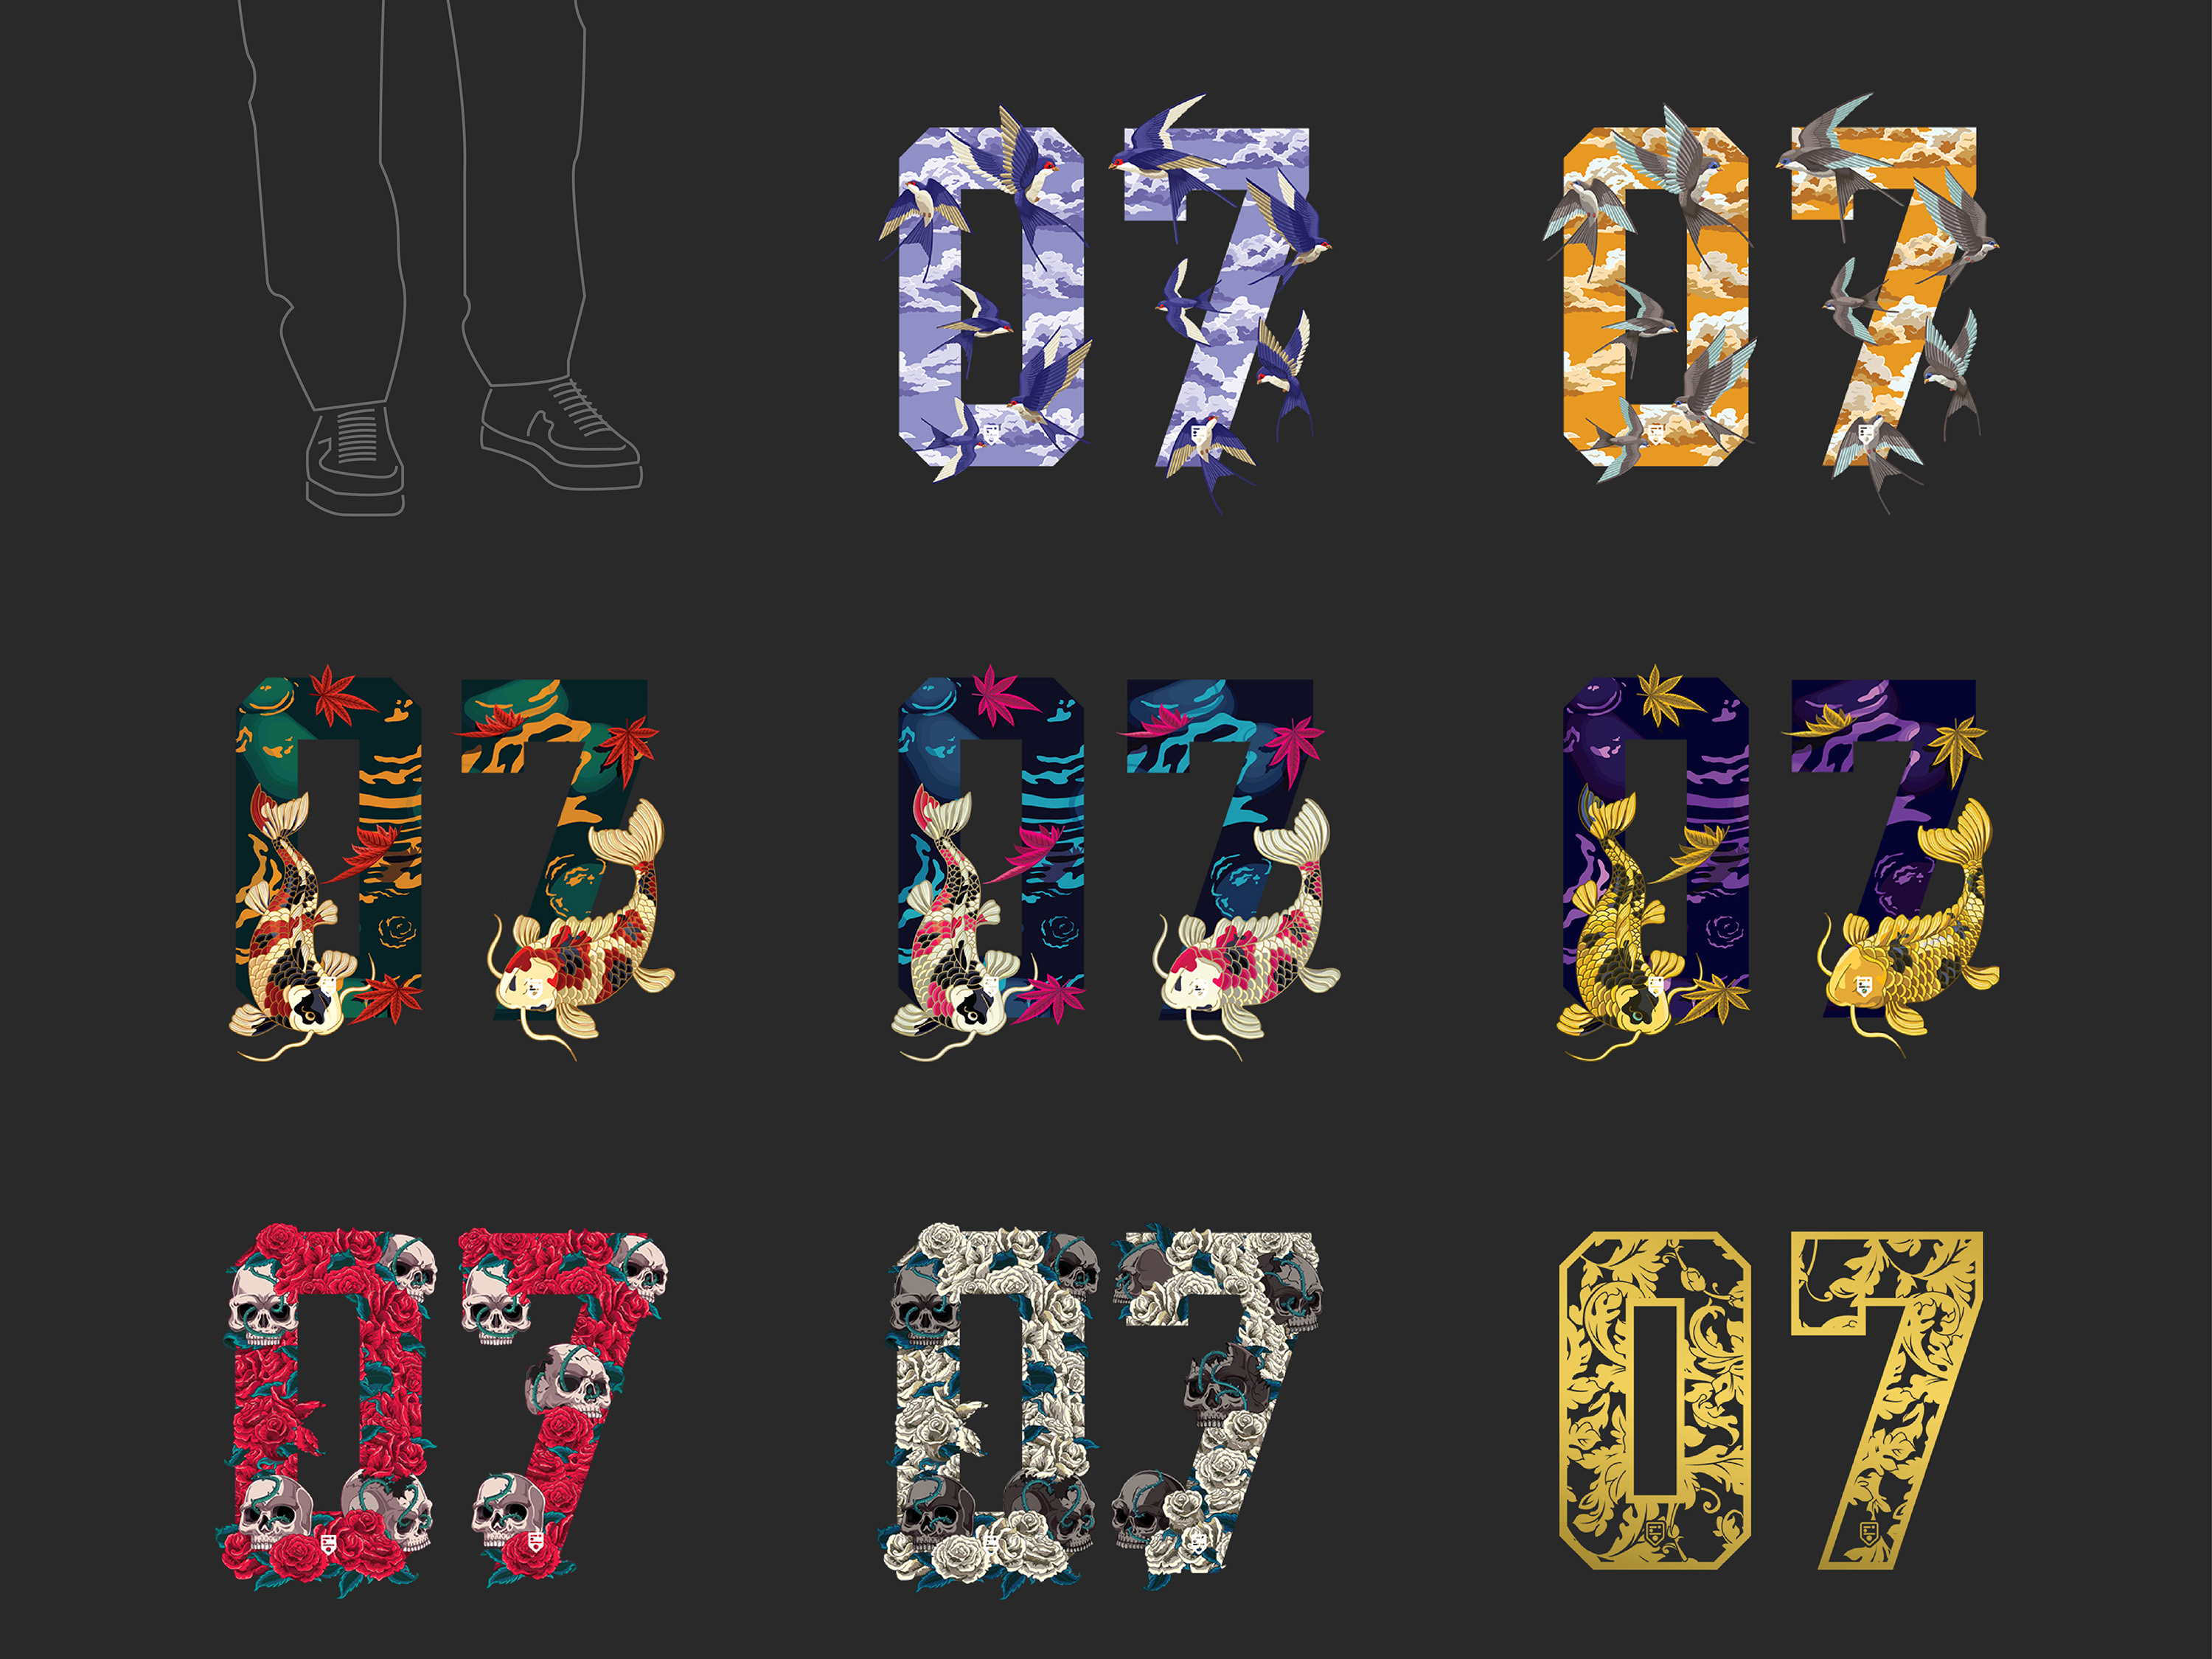 IDOTshirt branding development and brand collateral design showing illustration of number series with green, blue and purple koi fish design; purple and orange skies sparrows design; red and white skulls design and golden art deco leaves pattern design